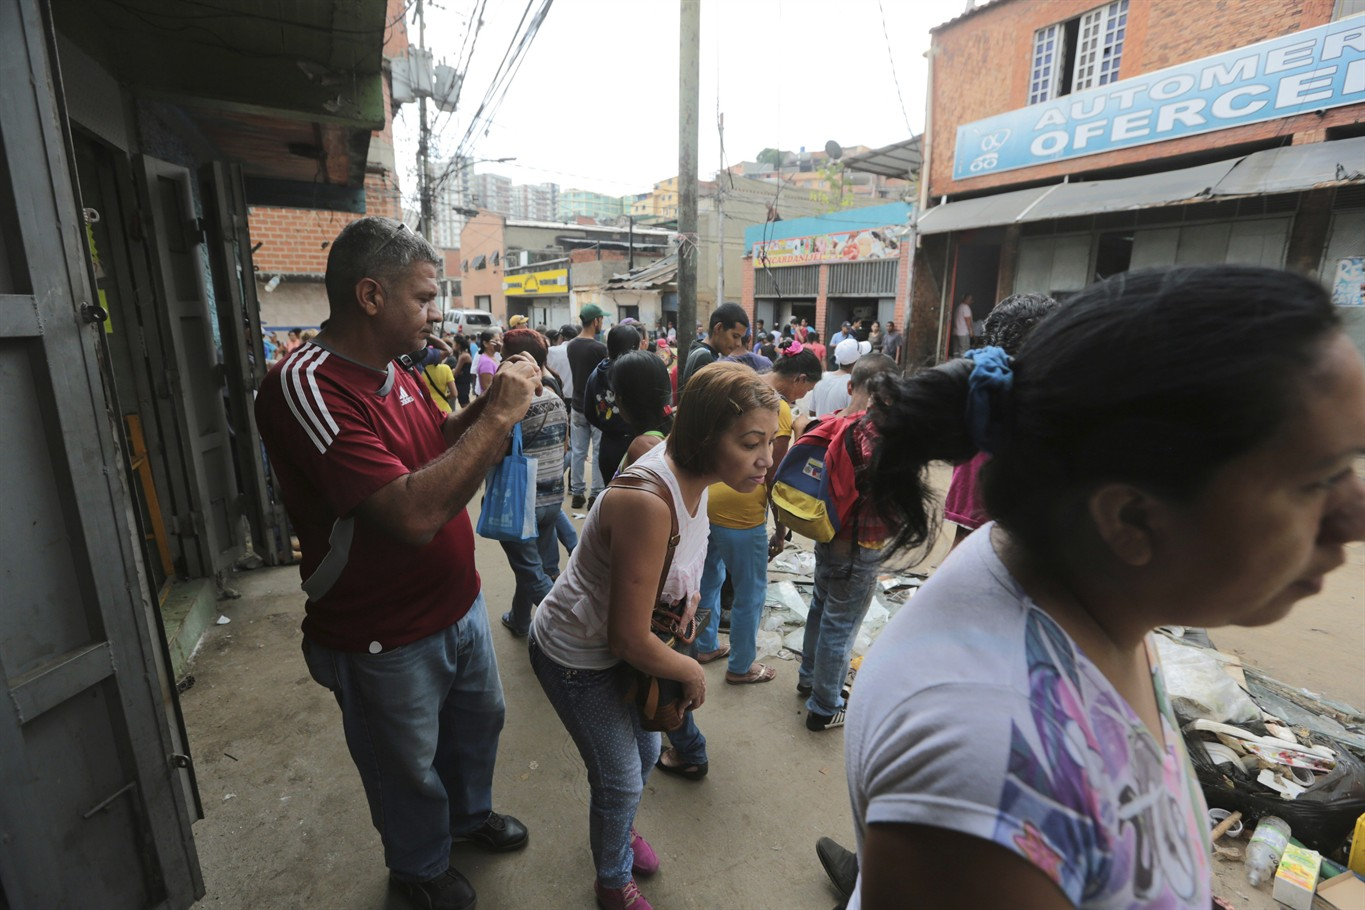 12 die as rioting breaks out in Venezuela